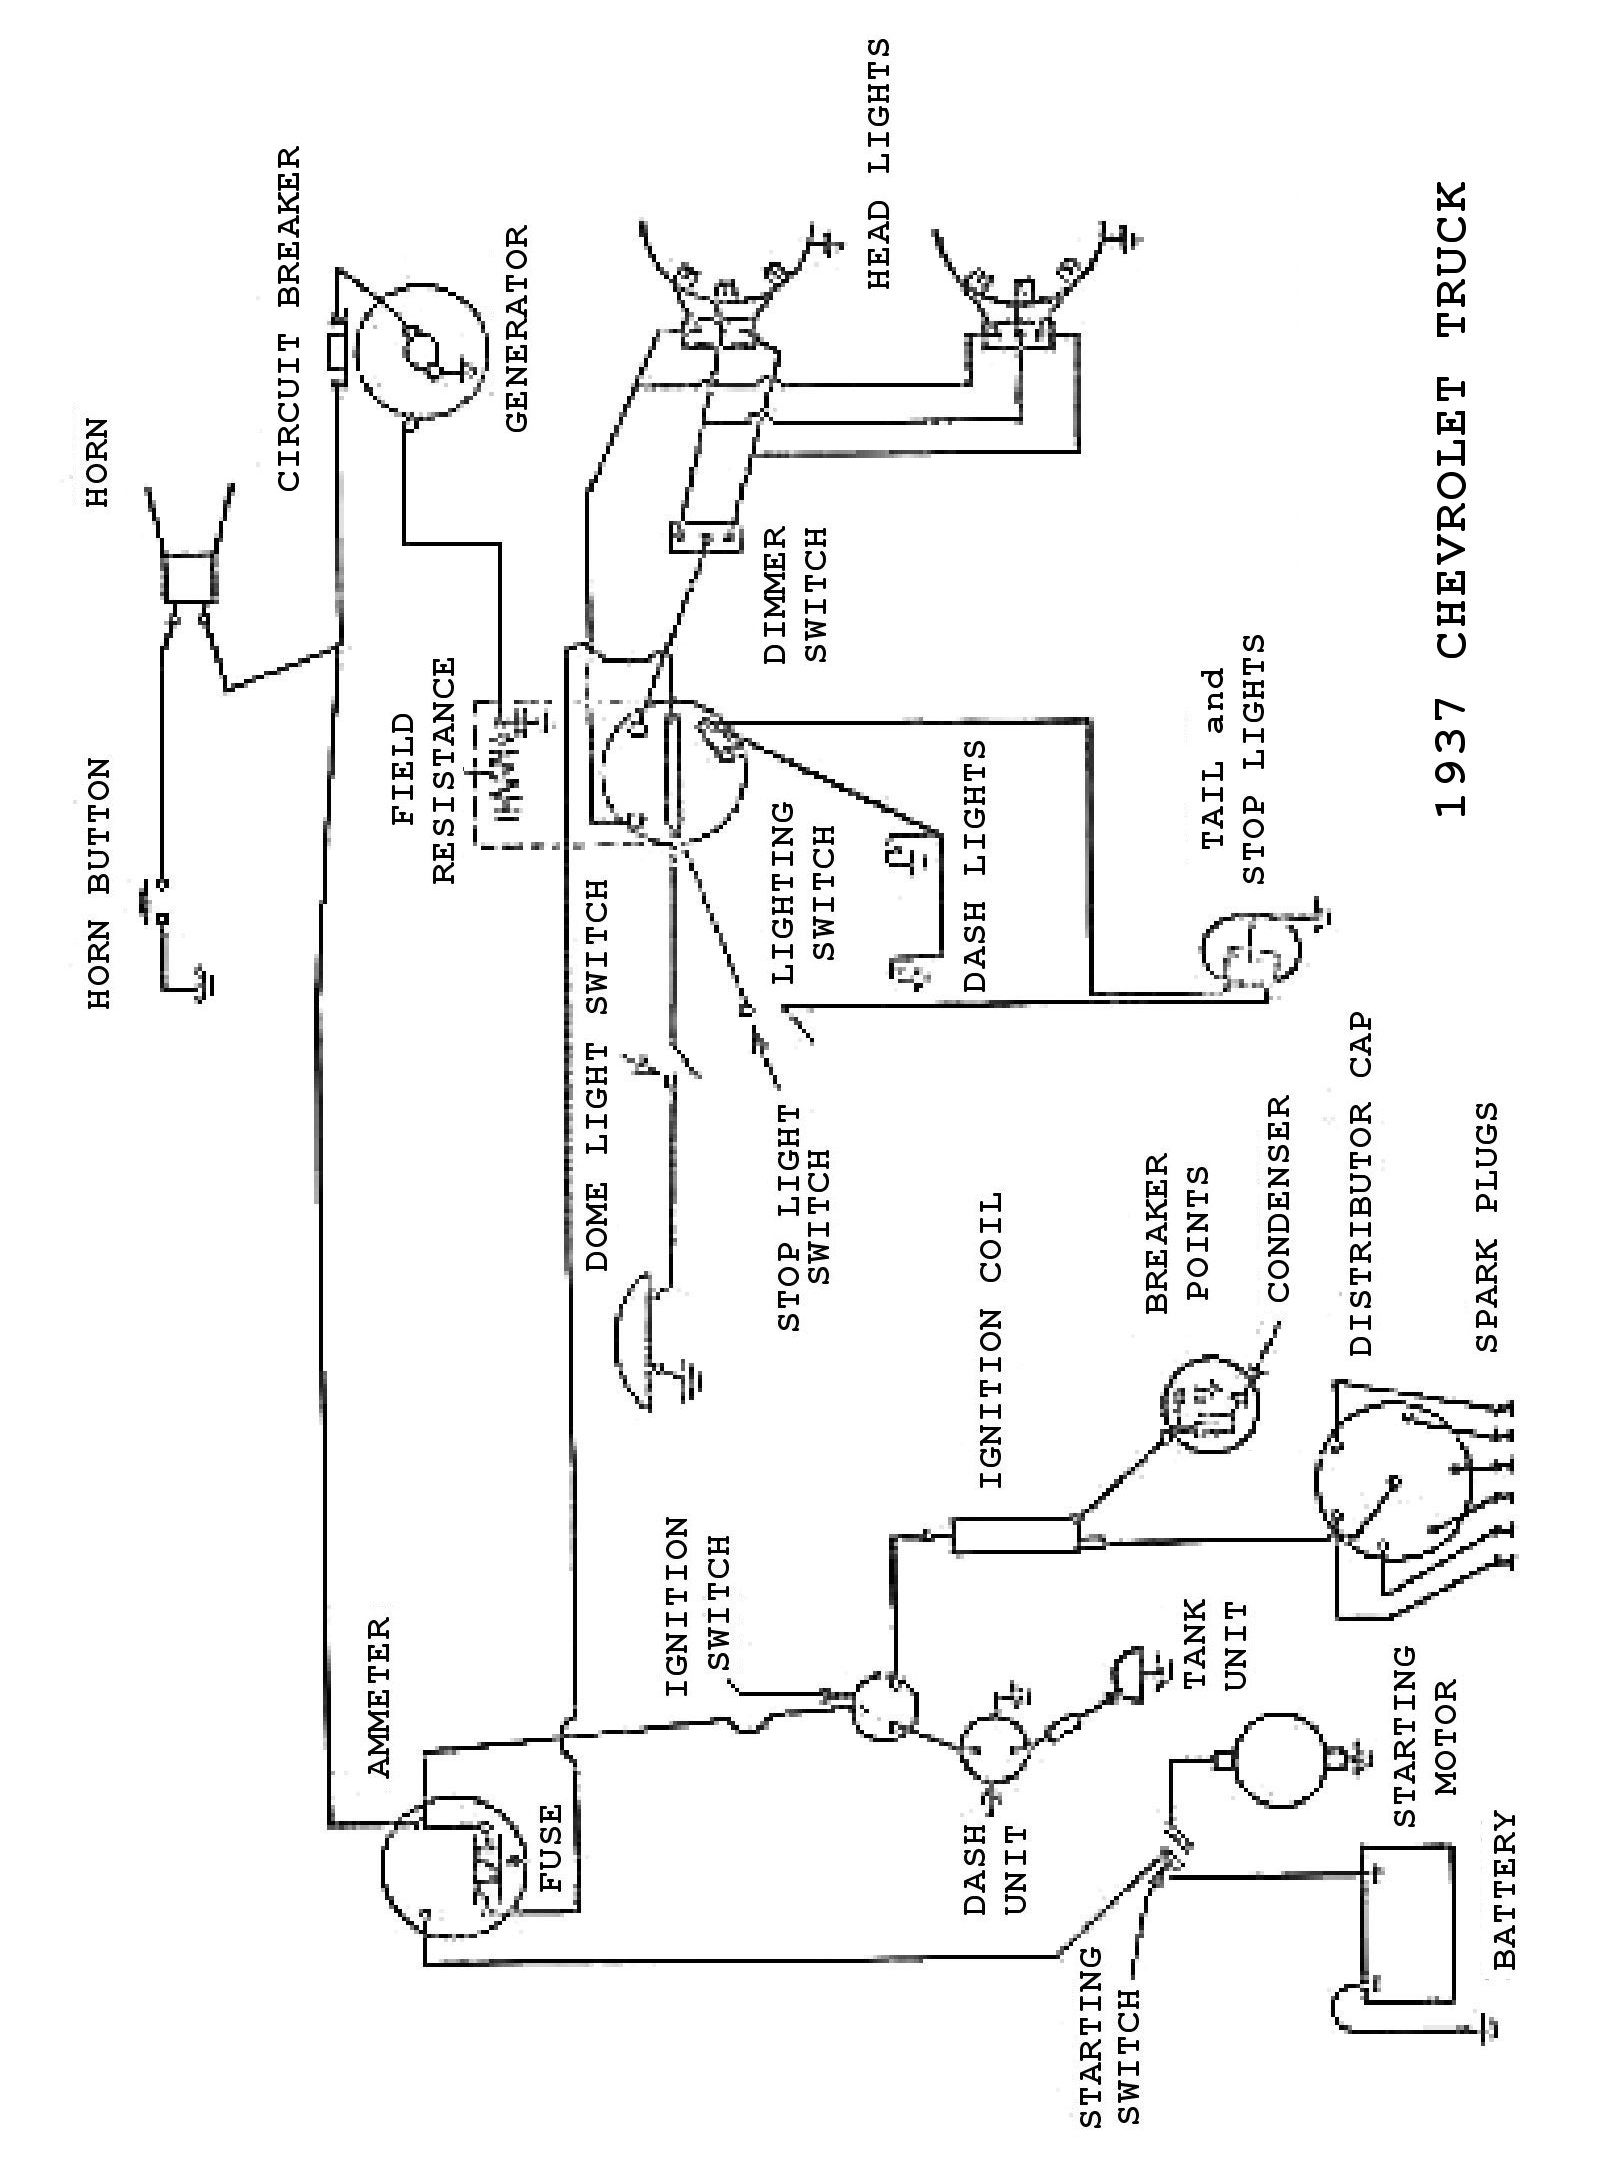 37truck chevy truck wiring diagram chevy fuel pump wiring diagram \u2022 wiring Ford Model T at soozxer.org